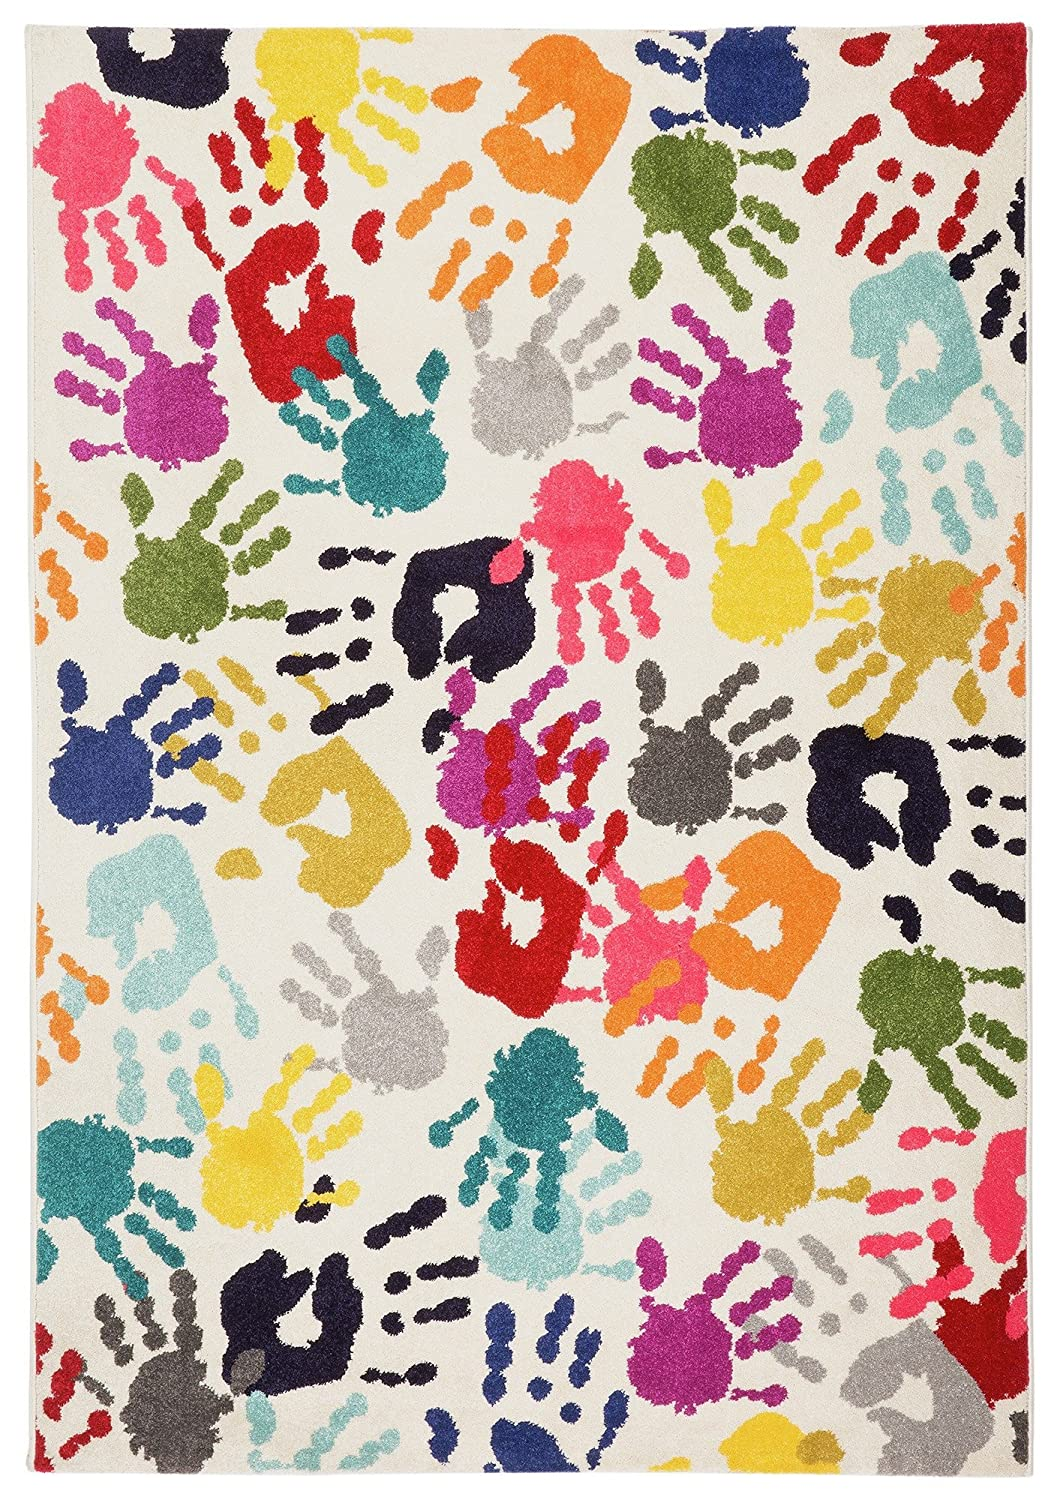 Lord of Rugs Modern Quality Multi Colour Hands Design Kids Children Rug in 120 x 160 cm (4'x5'3)